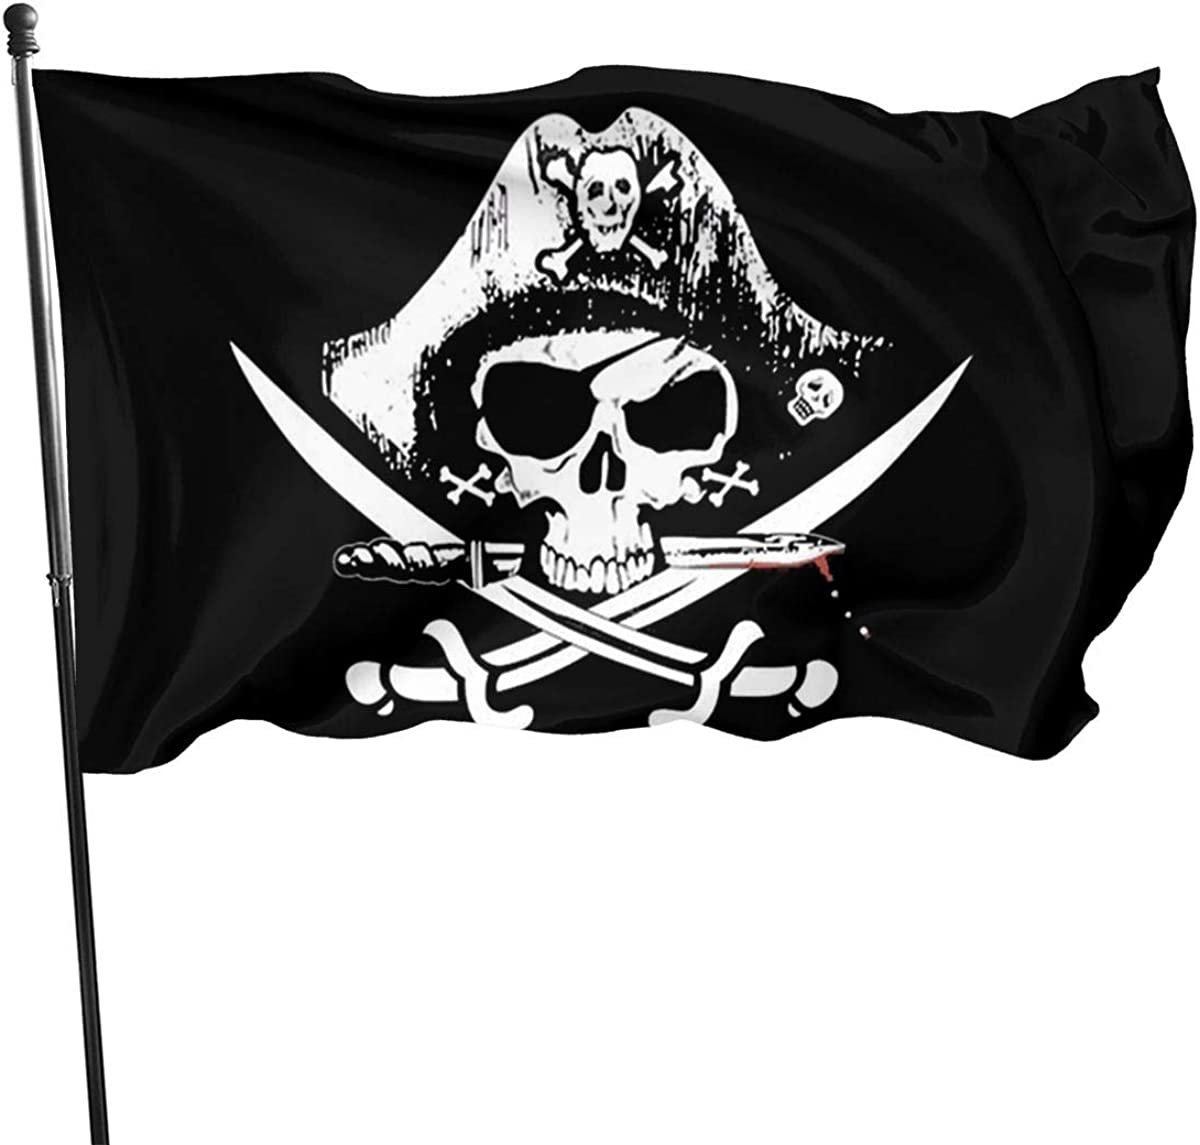 Pirate Jolly Roger Skulls Bones Skeleton Flag Double Sided and Double Stitched Jolly Roger Boat Flags with Brass Grommets, Pirate Party Supplies Halloween 3x5ft